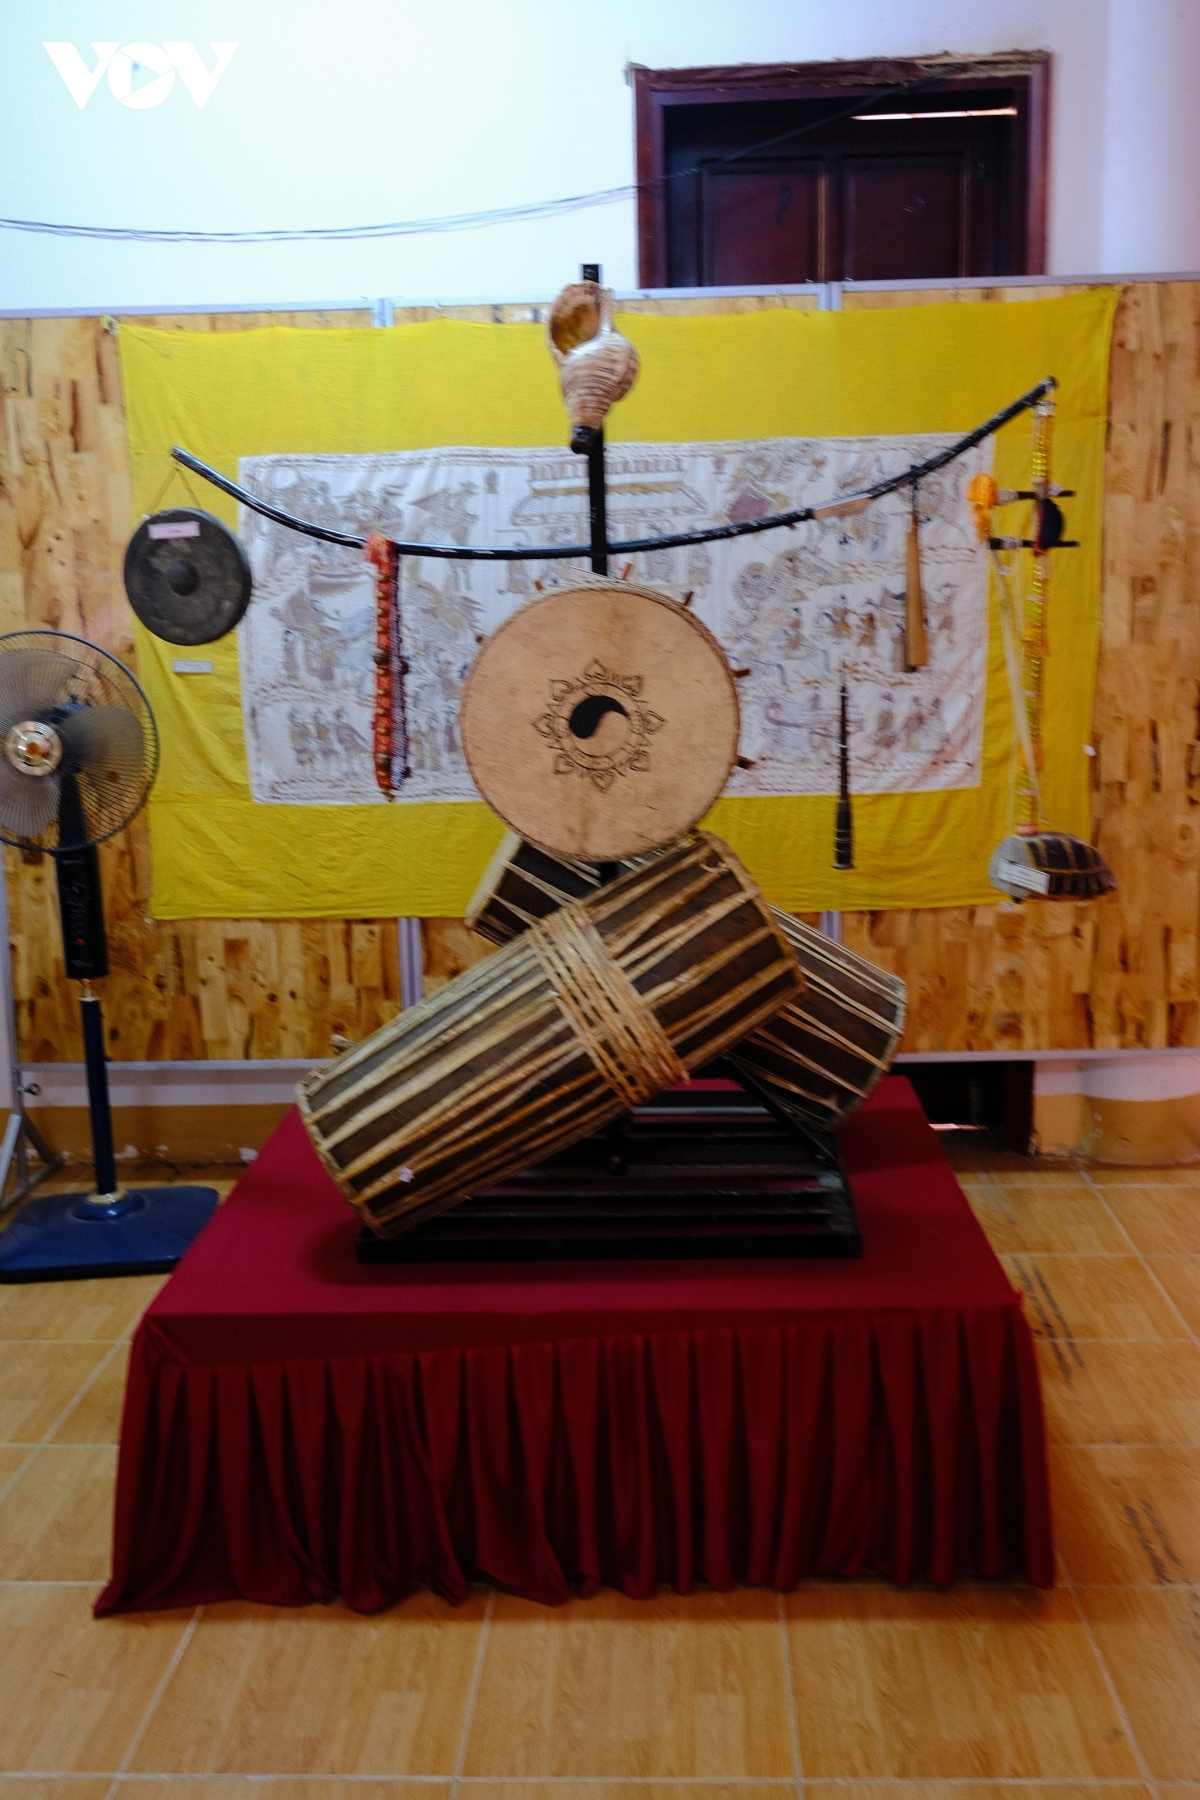 Musical instruments of the Cham people on show at the Champa culture museum.